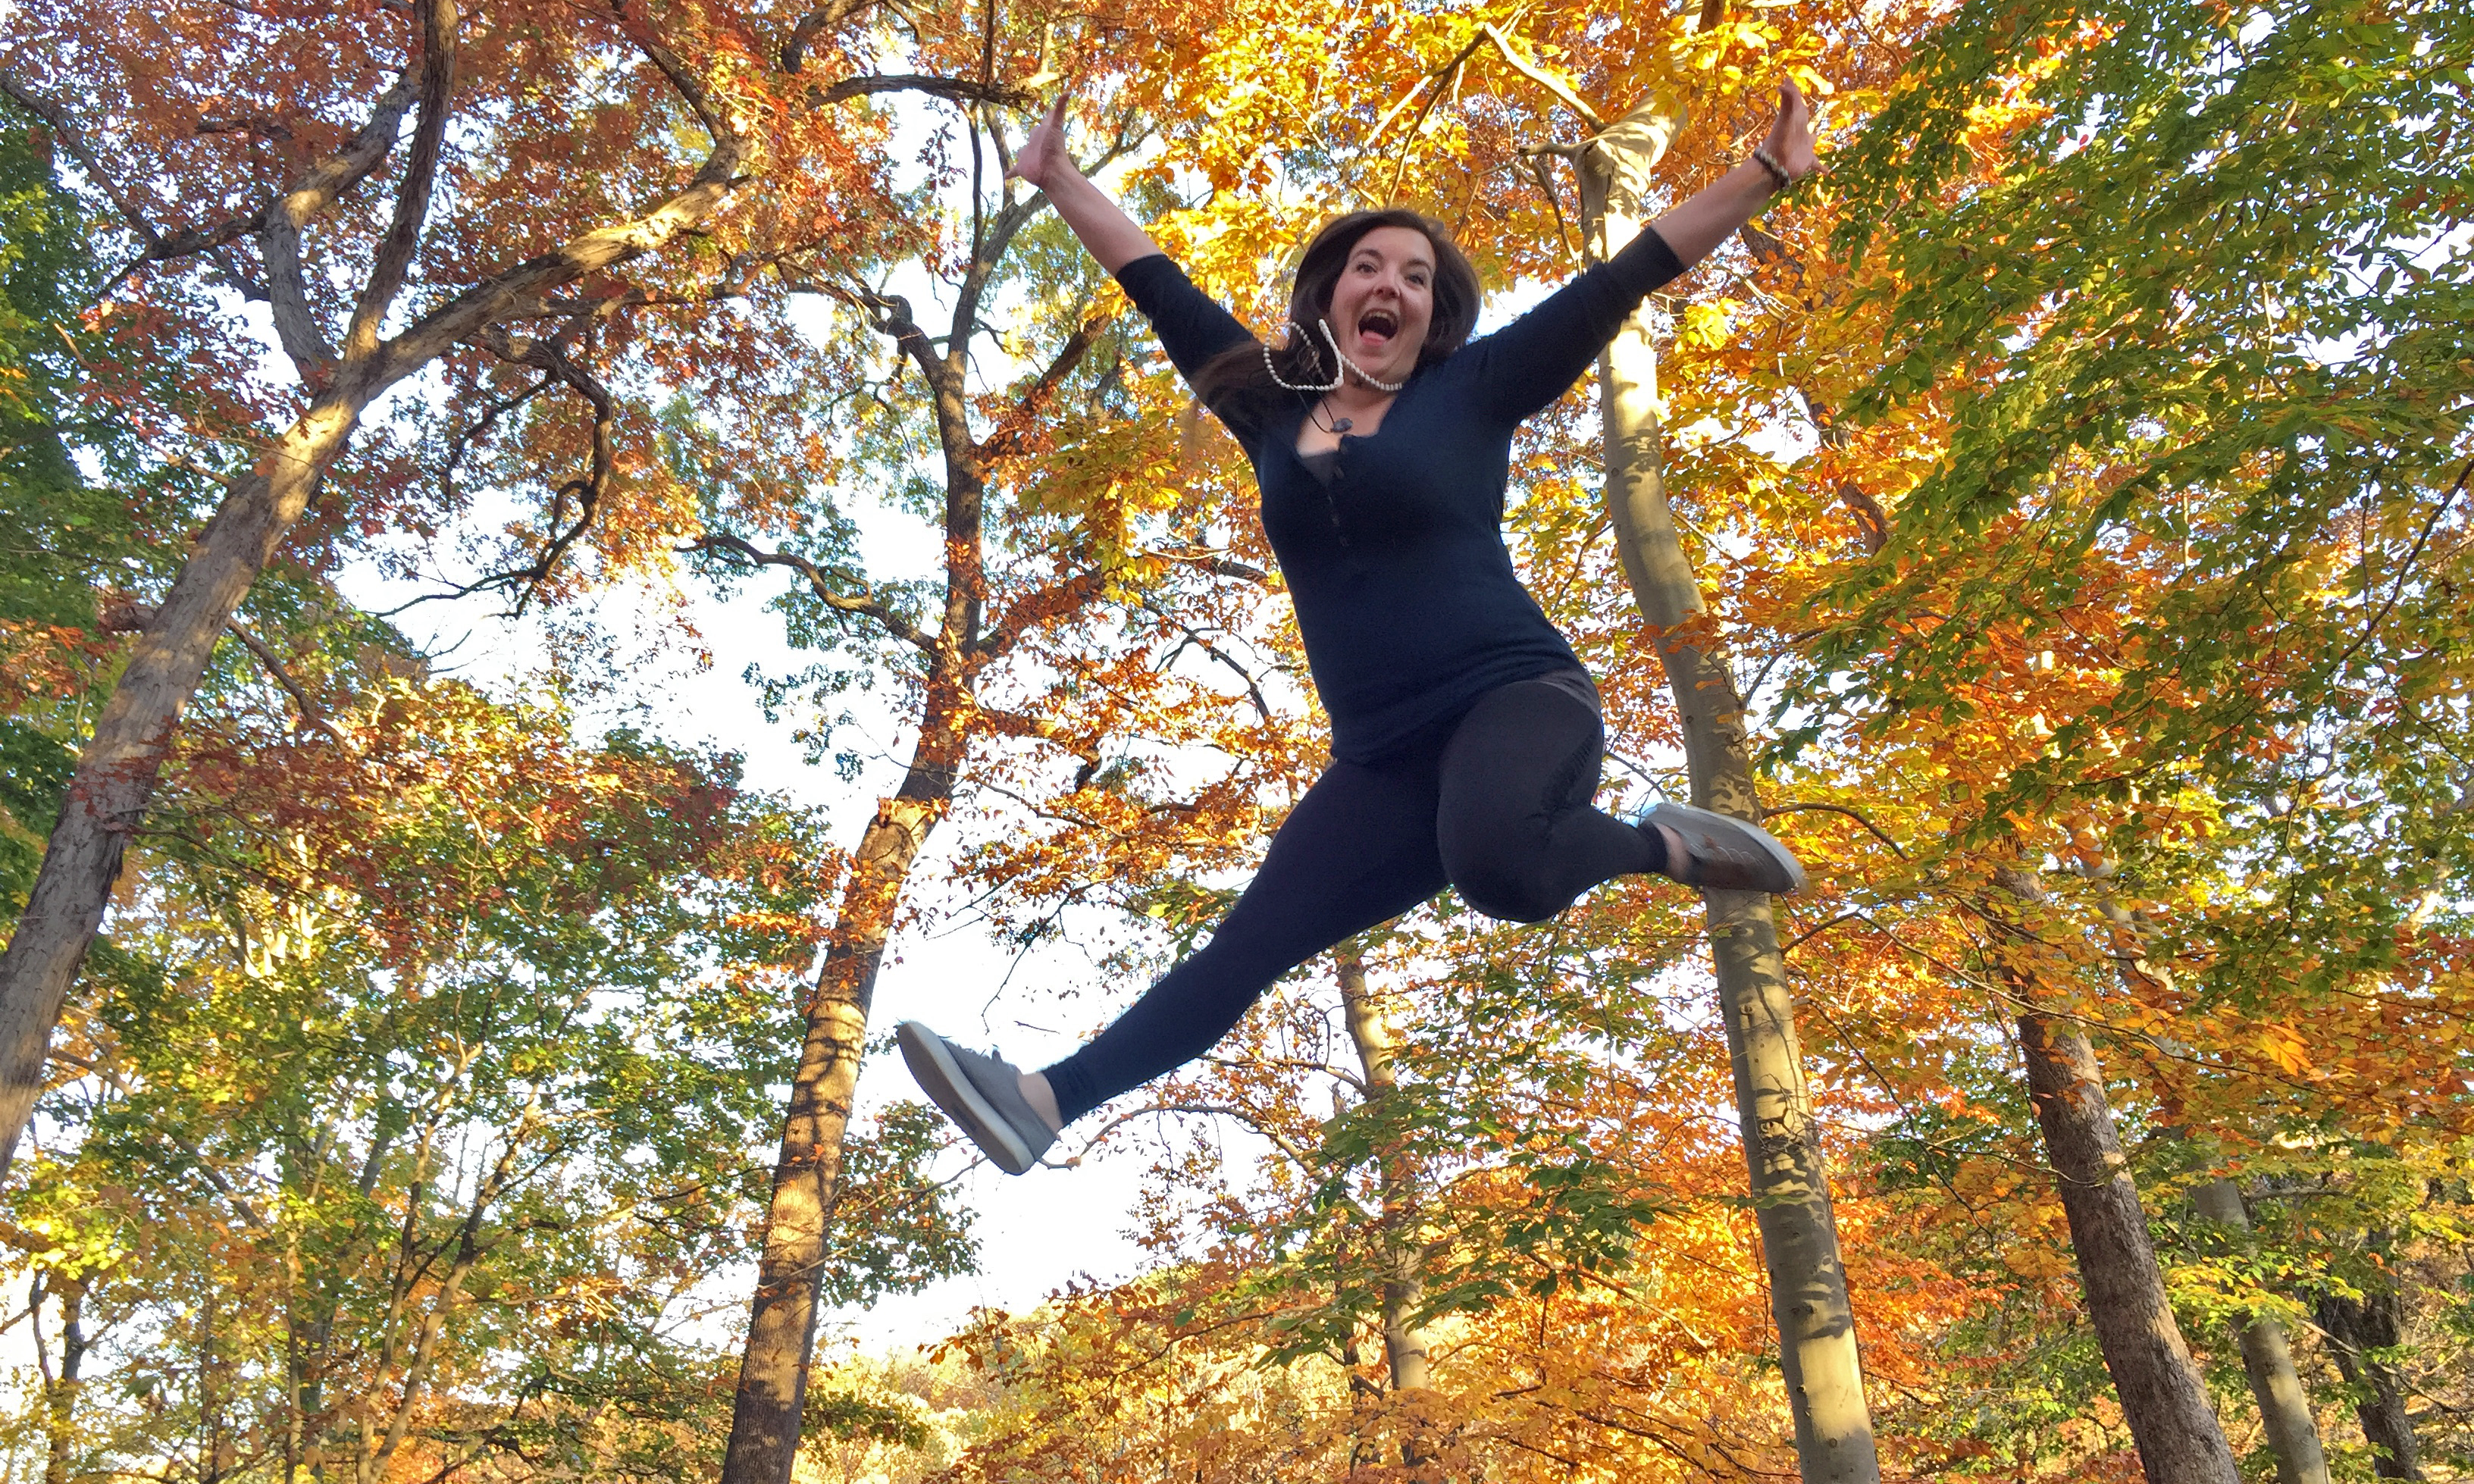 Sheila Jumping in Autumn